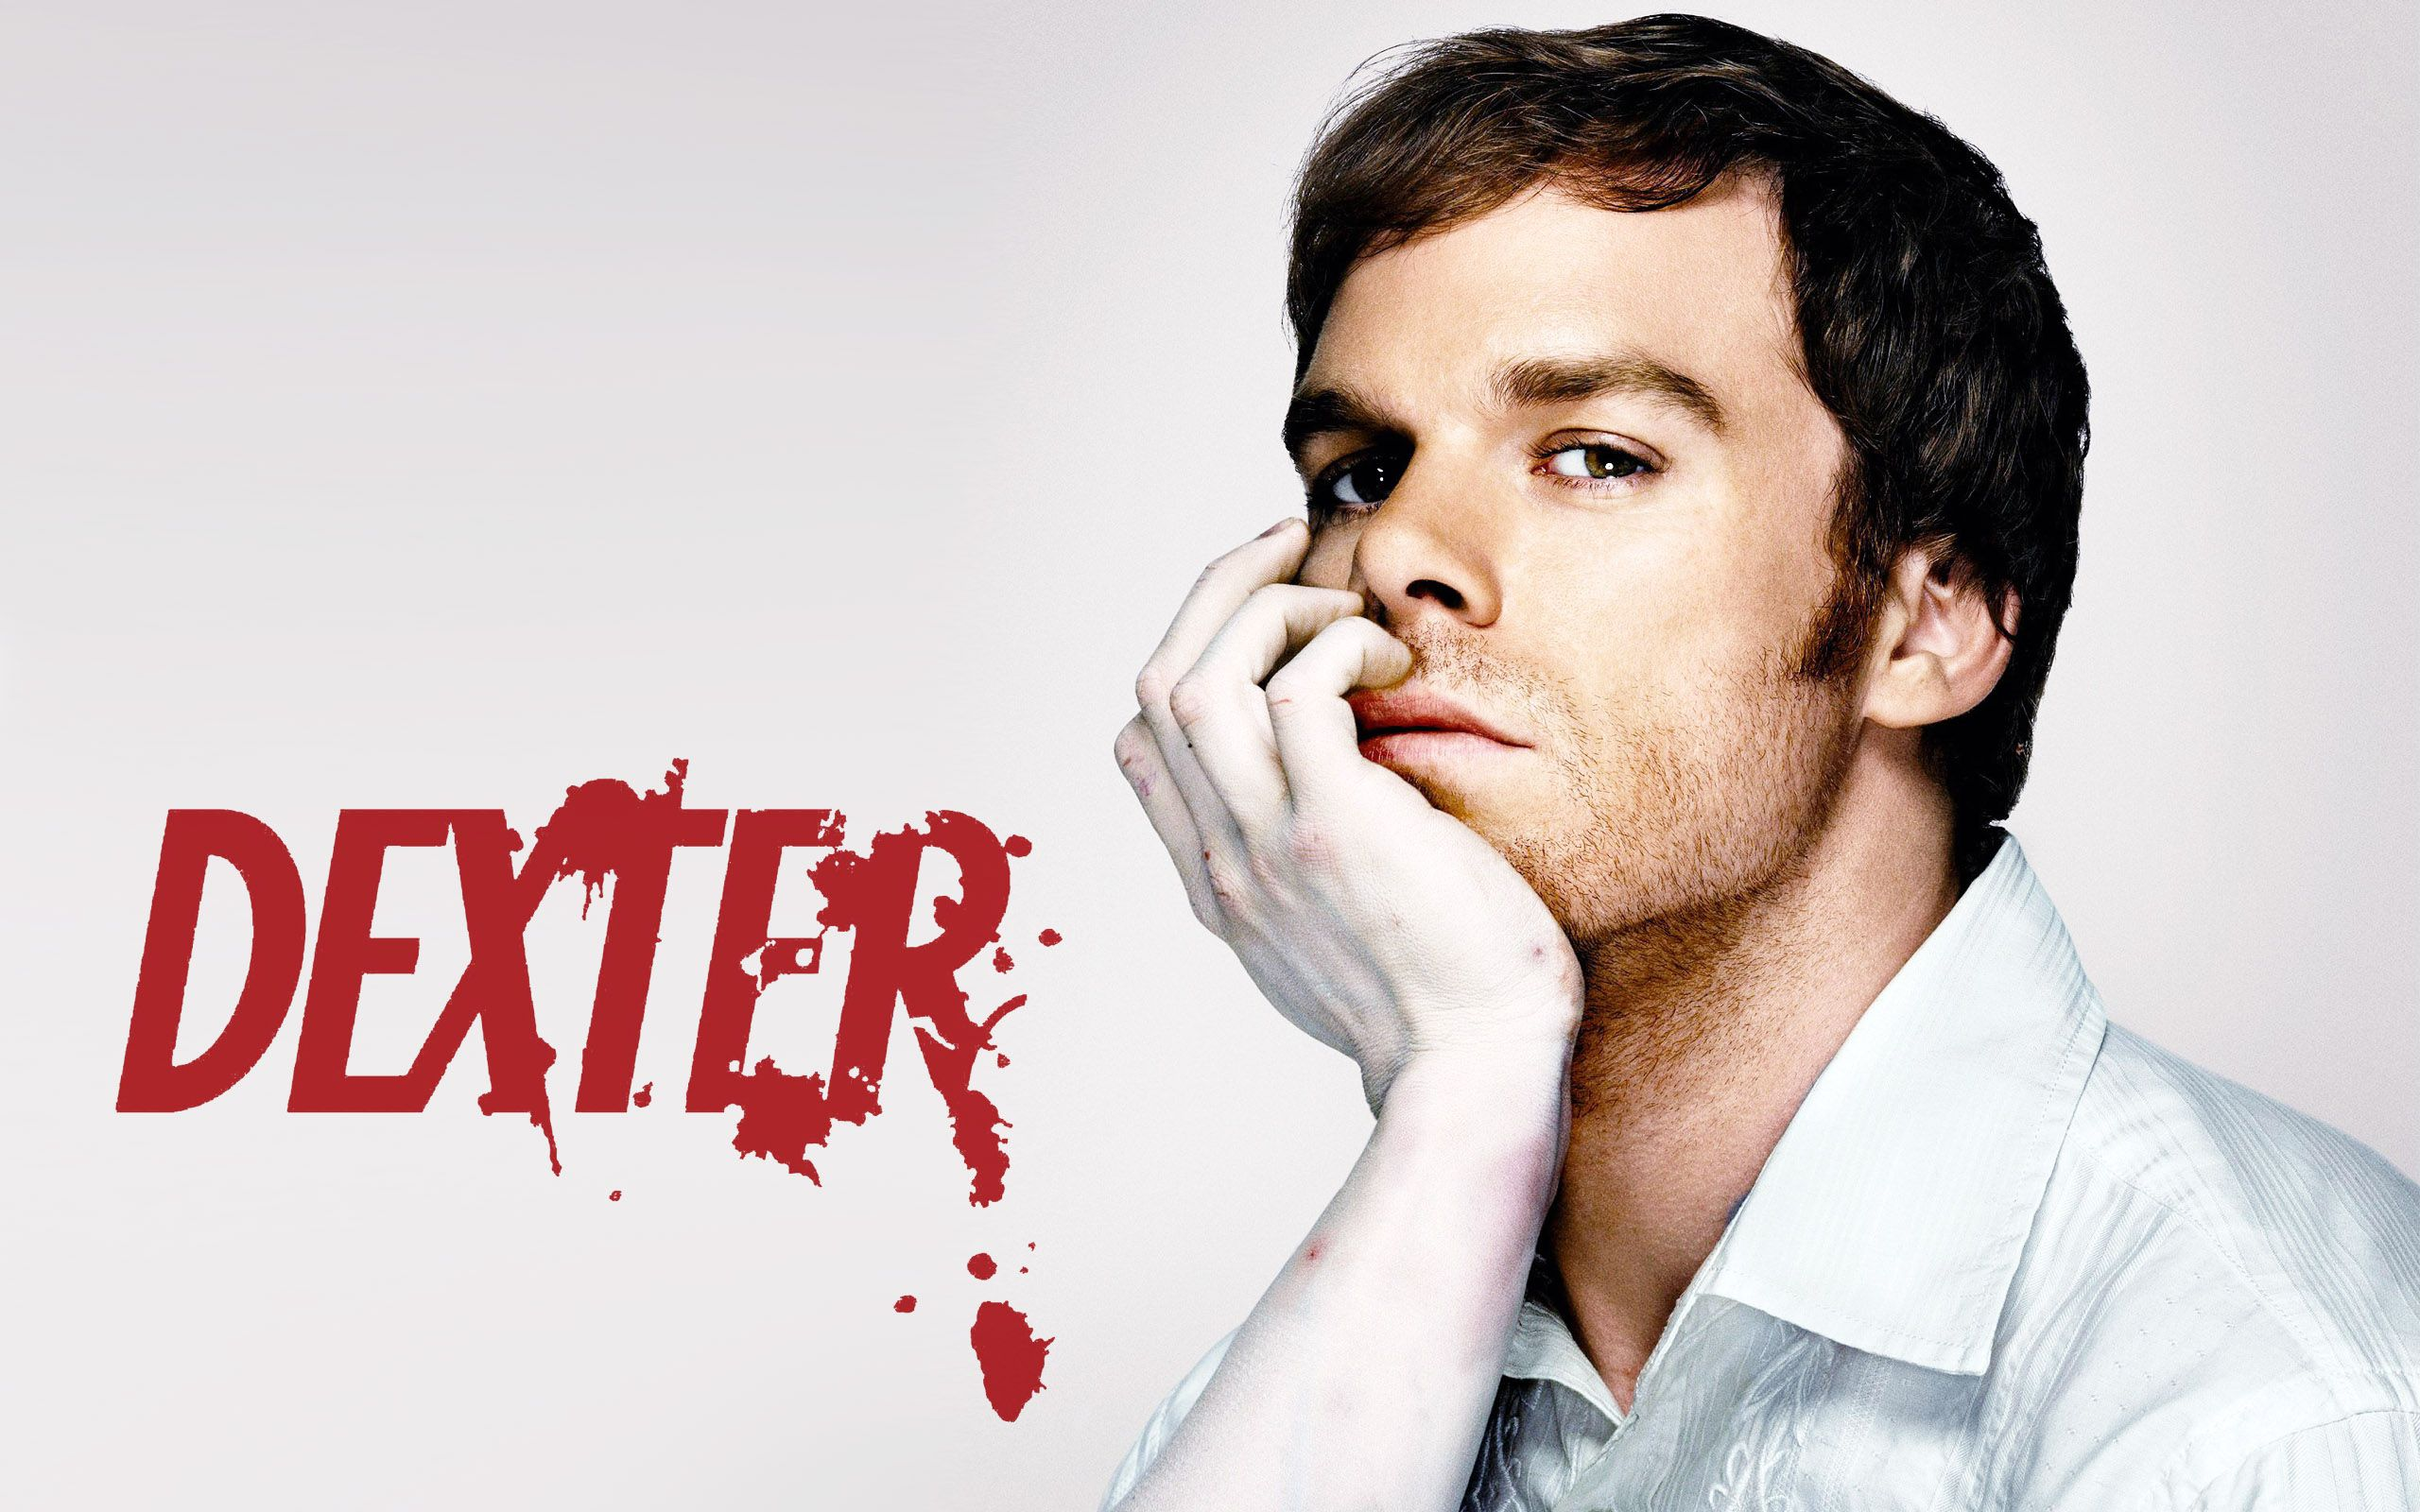 free dexter wallpaper 22880